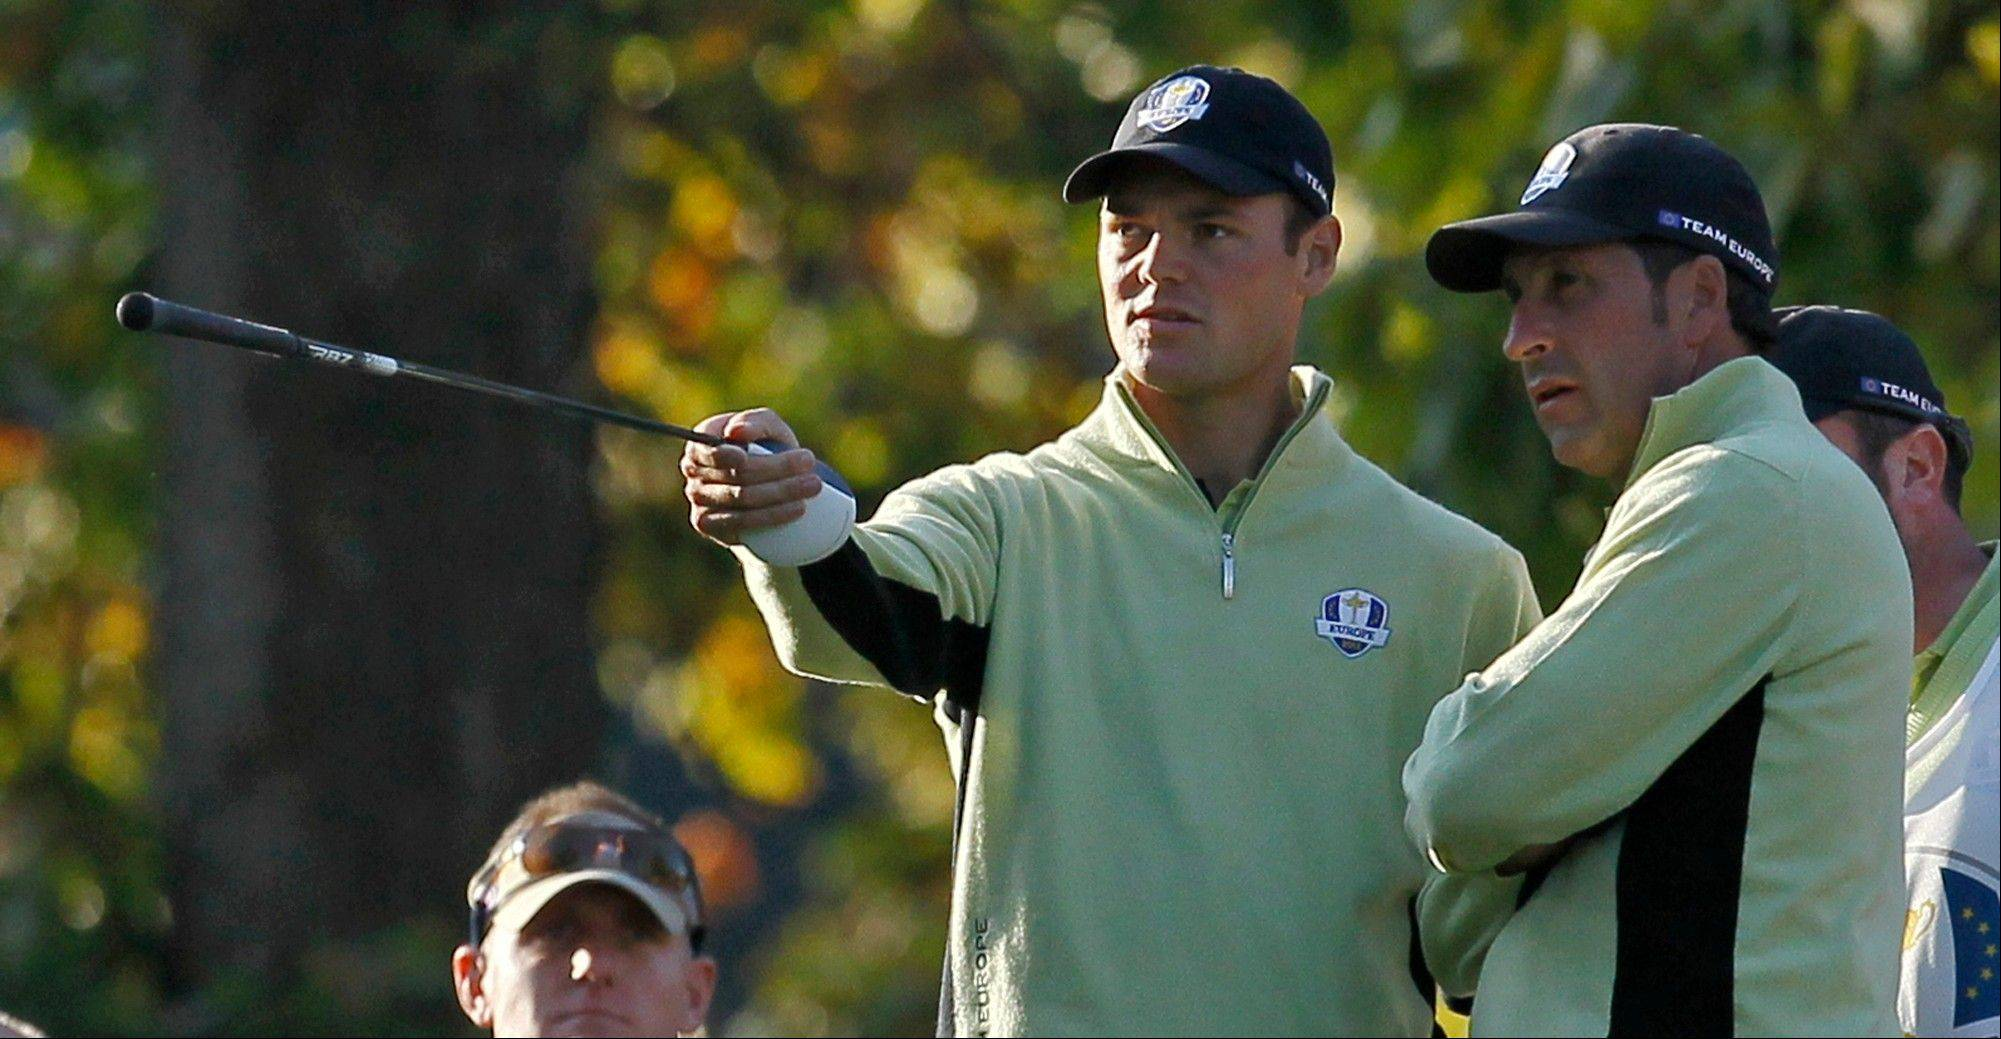 European team captain Jose Maria Olazabal, right, talks to Martin Kaymer during a fourball match at the Ryder Cup Friday at Medinah Country Club. Europe trails 5-3 going into Saturday's matches.